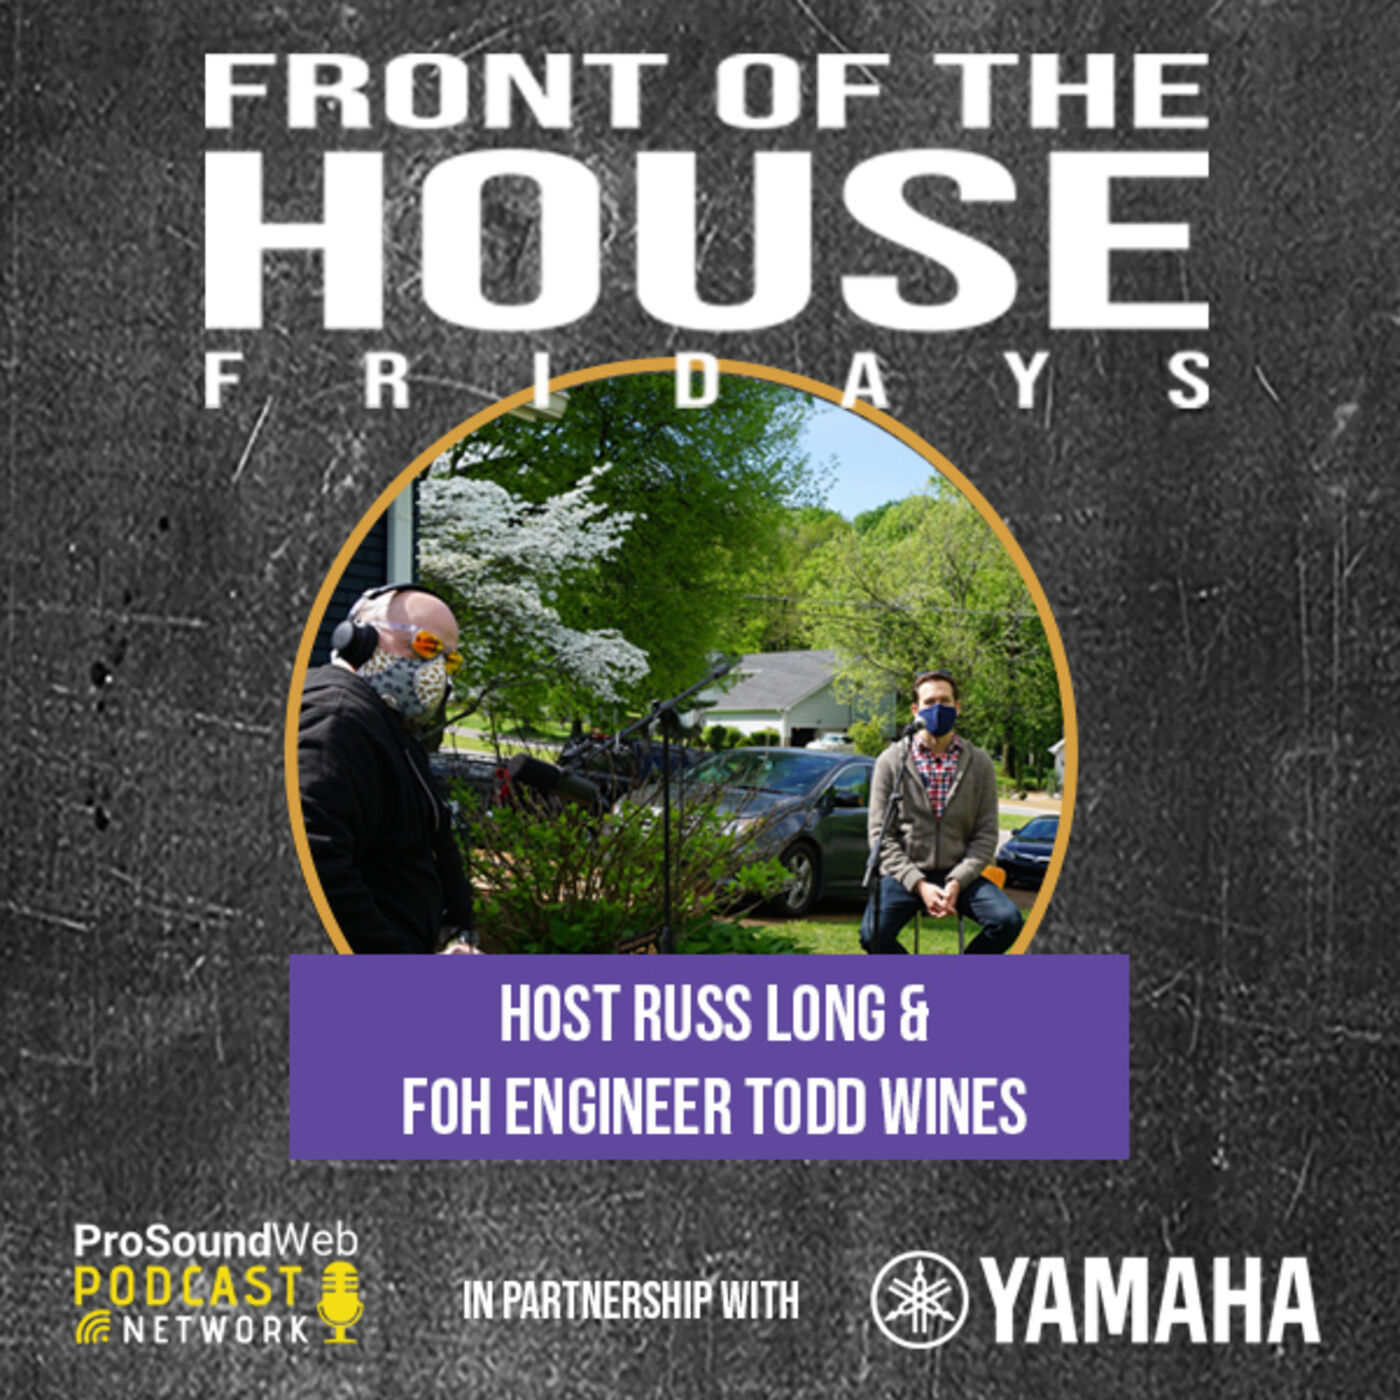 Episode 1: Engineer Todd Wines